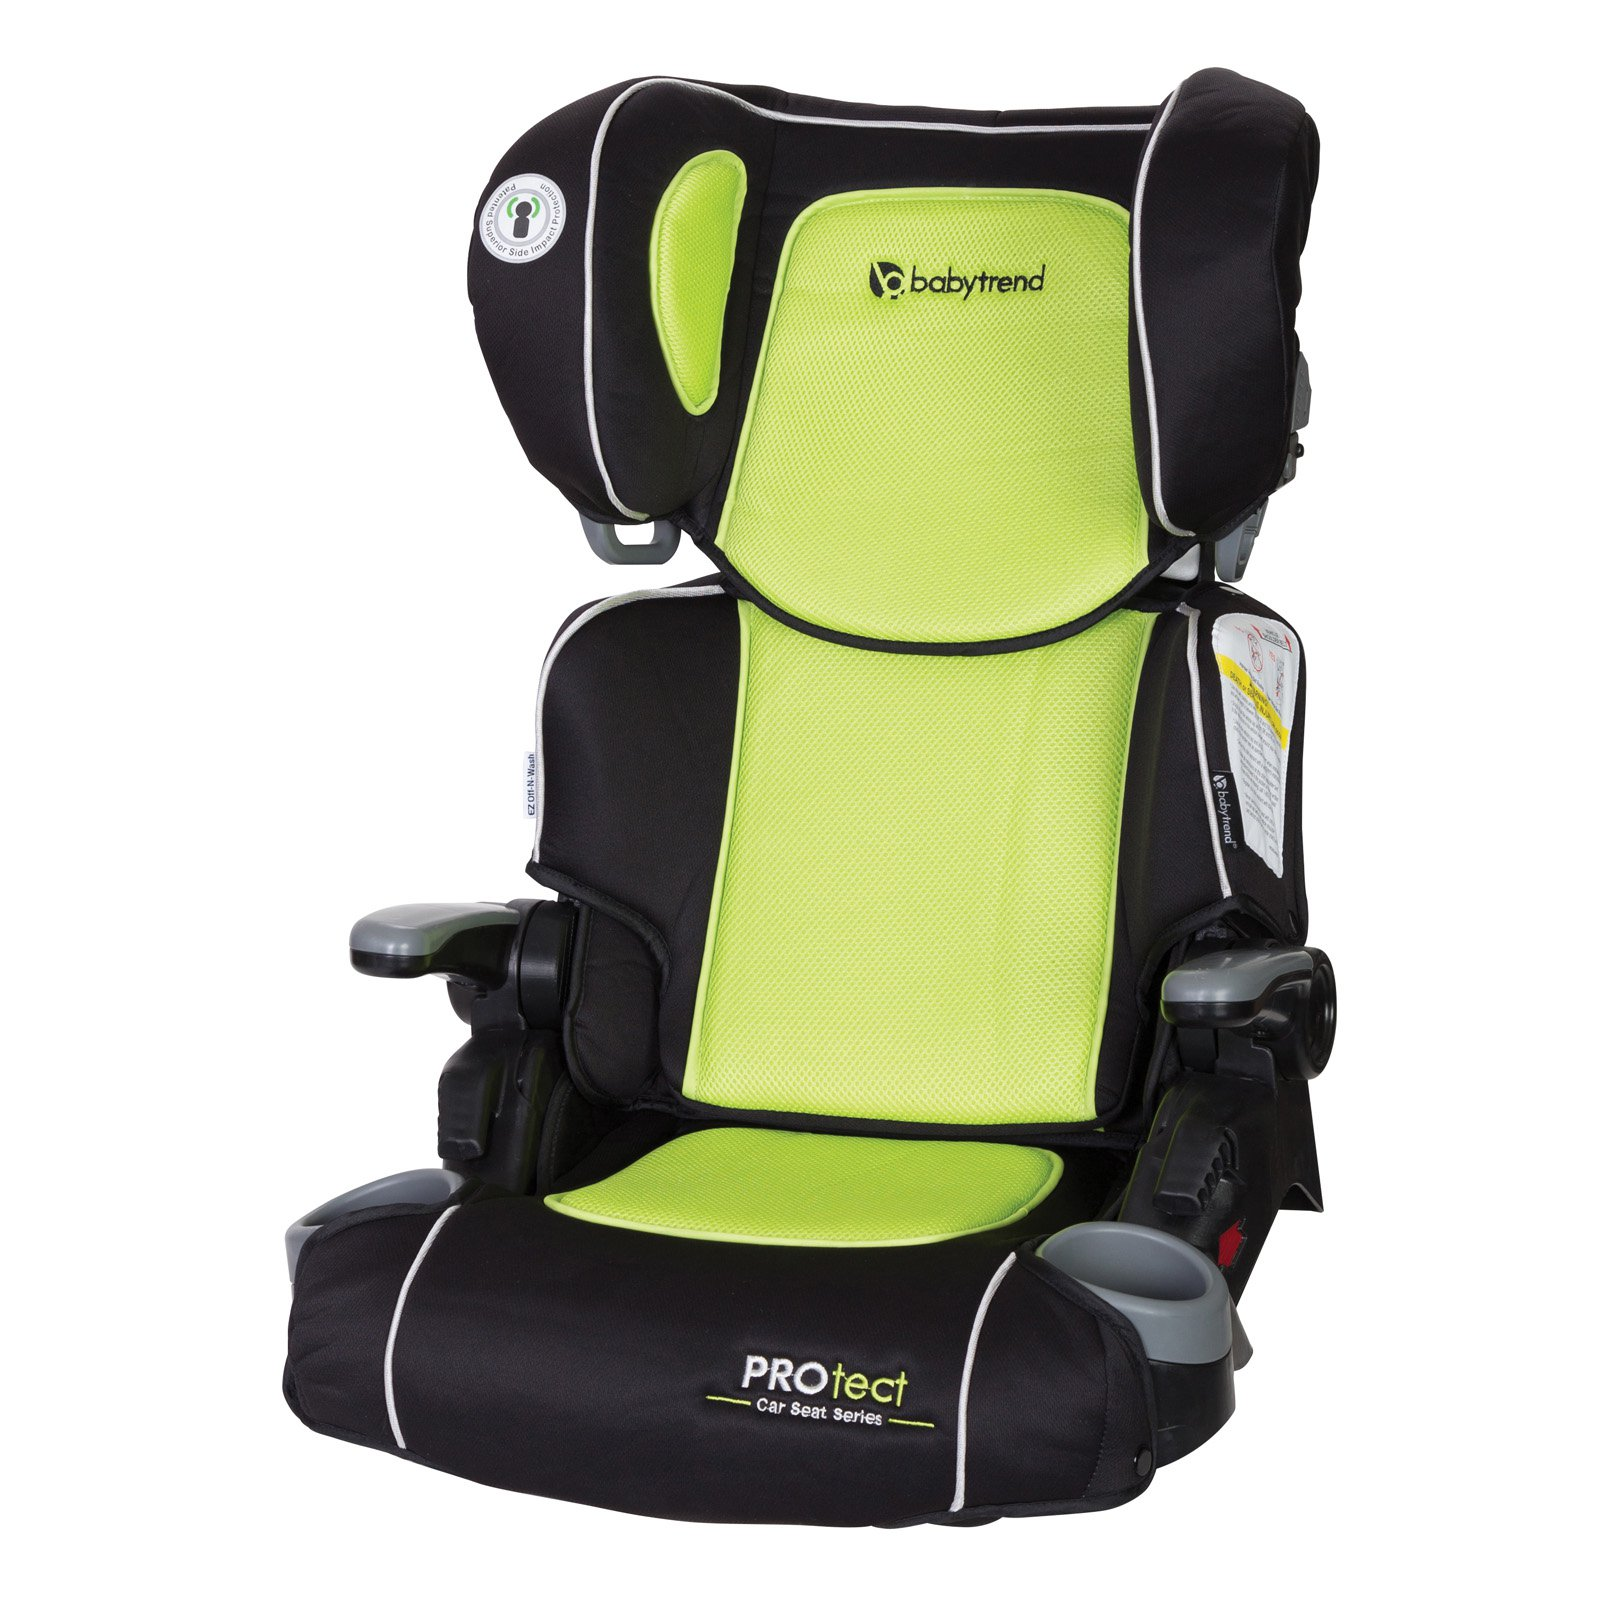 Baby Trend Yumi 2-in-1 Folding Booster Seat - Go Go Green